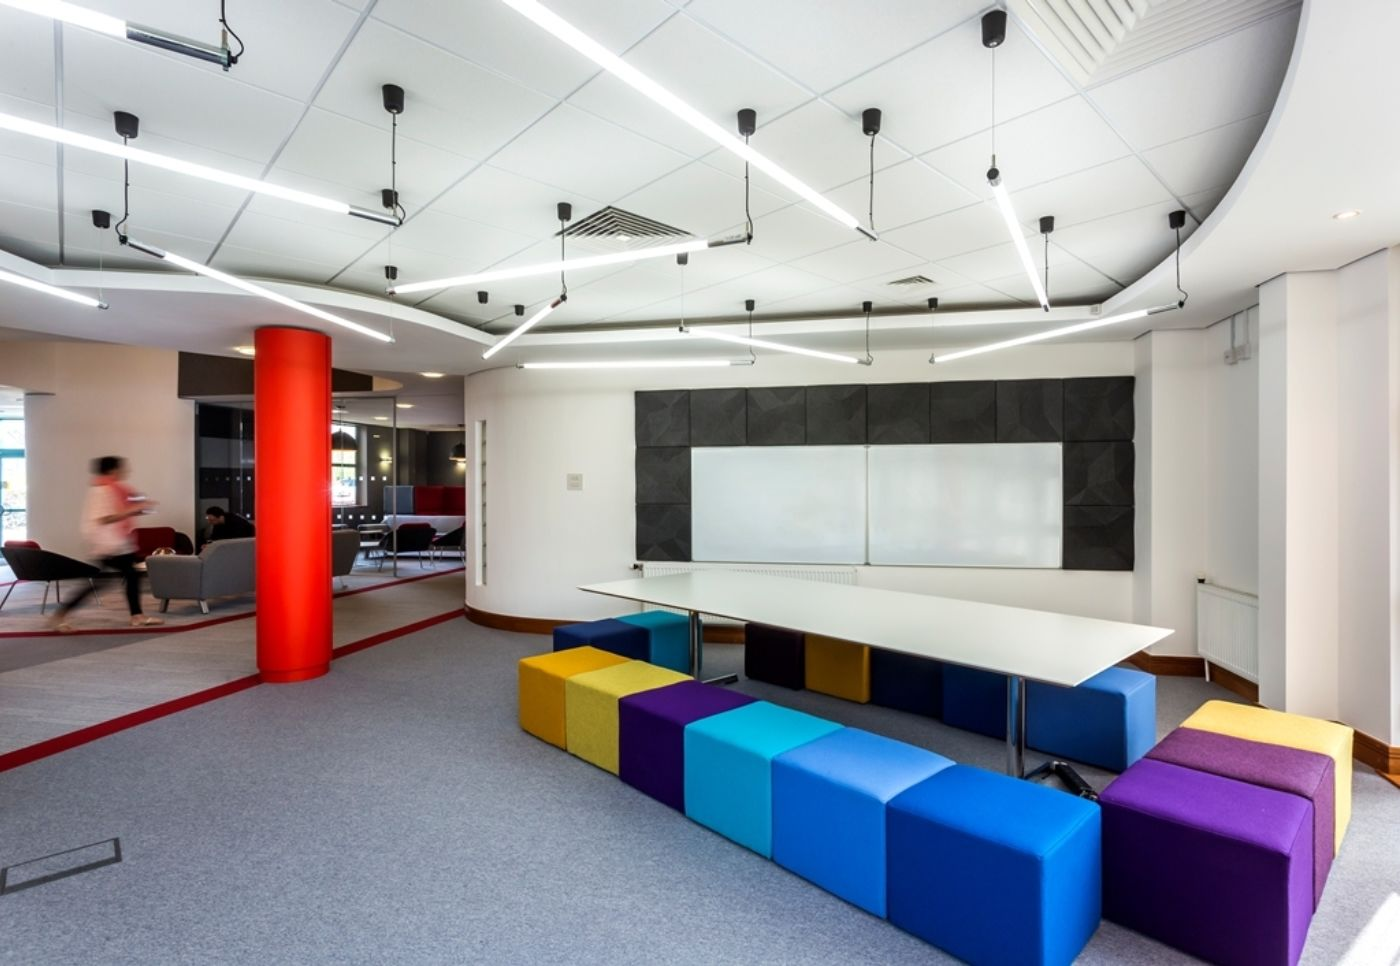 Informal meeting room with colourful stools